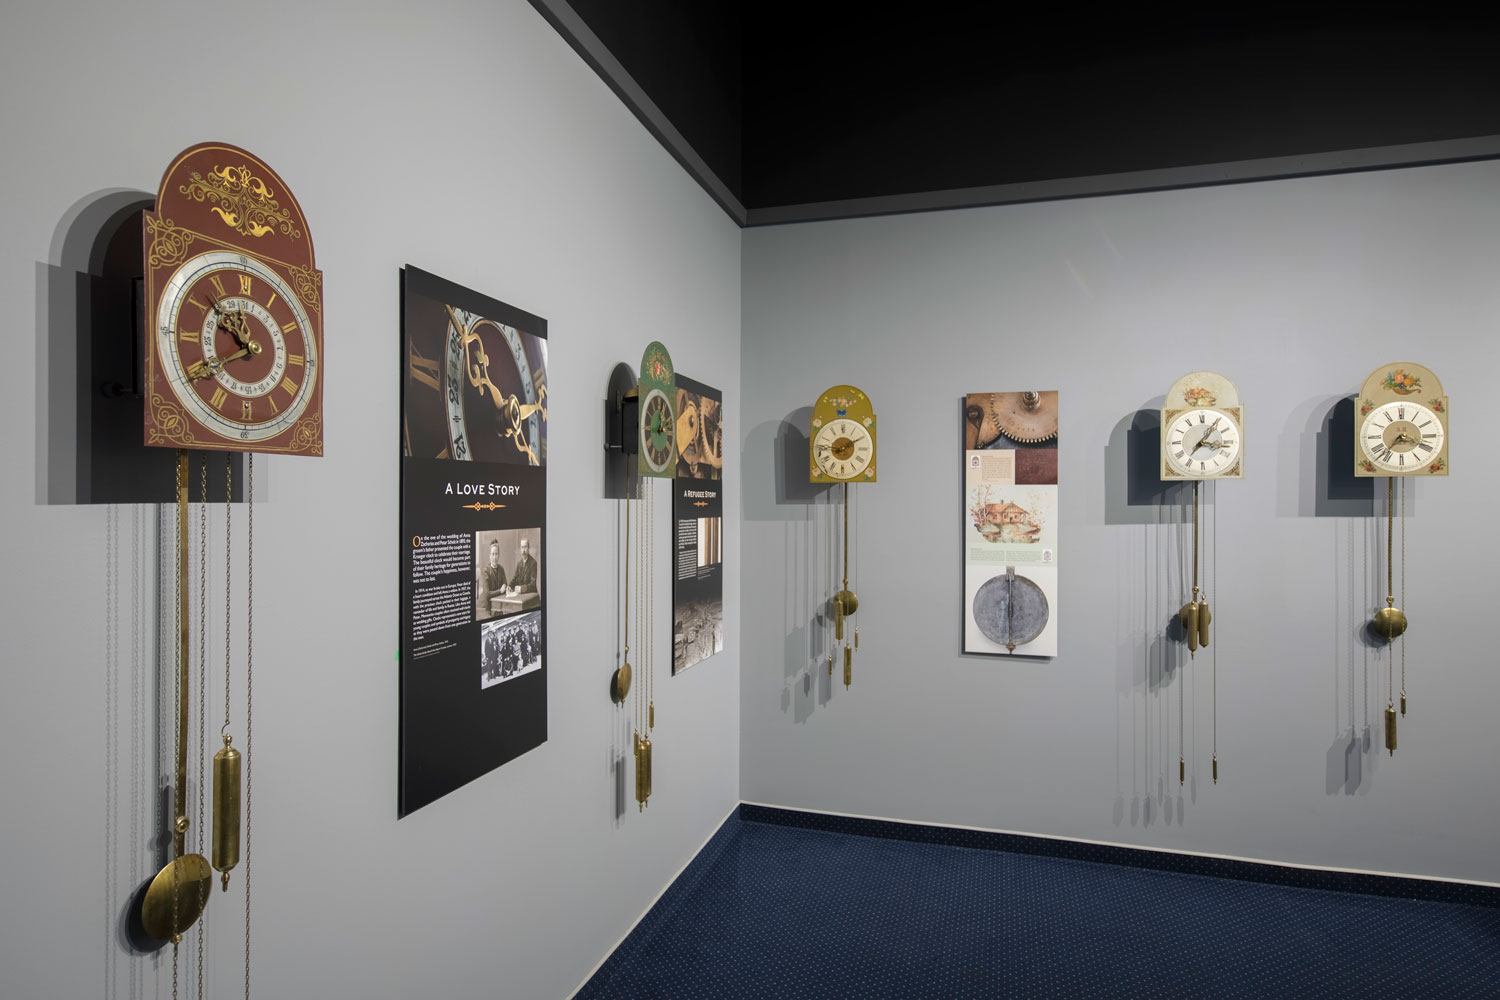 kroeger-clock-exhibtion-1.jpg